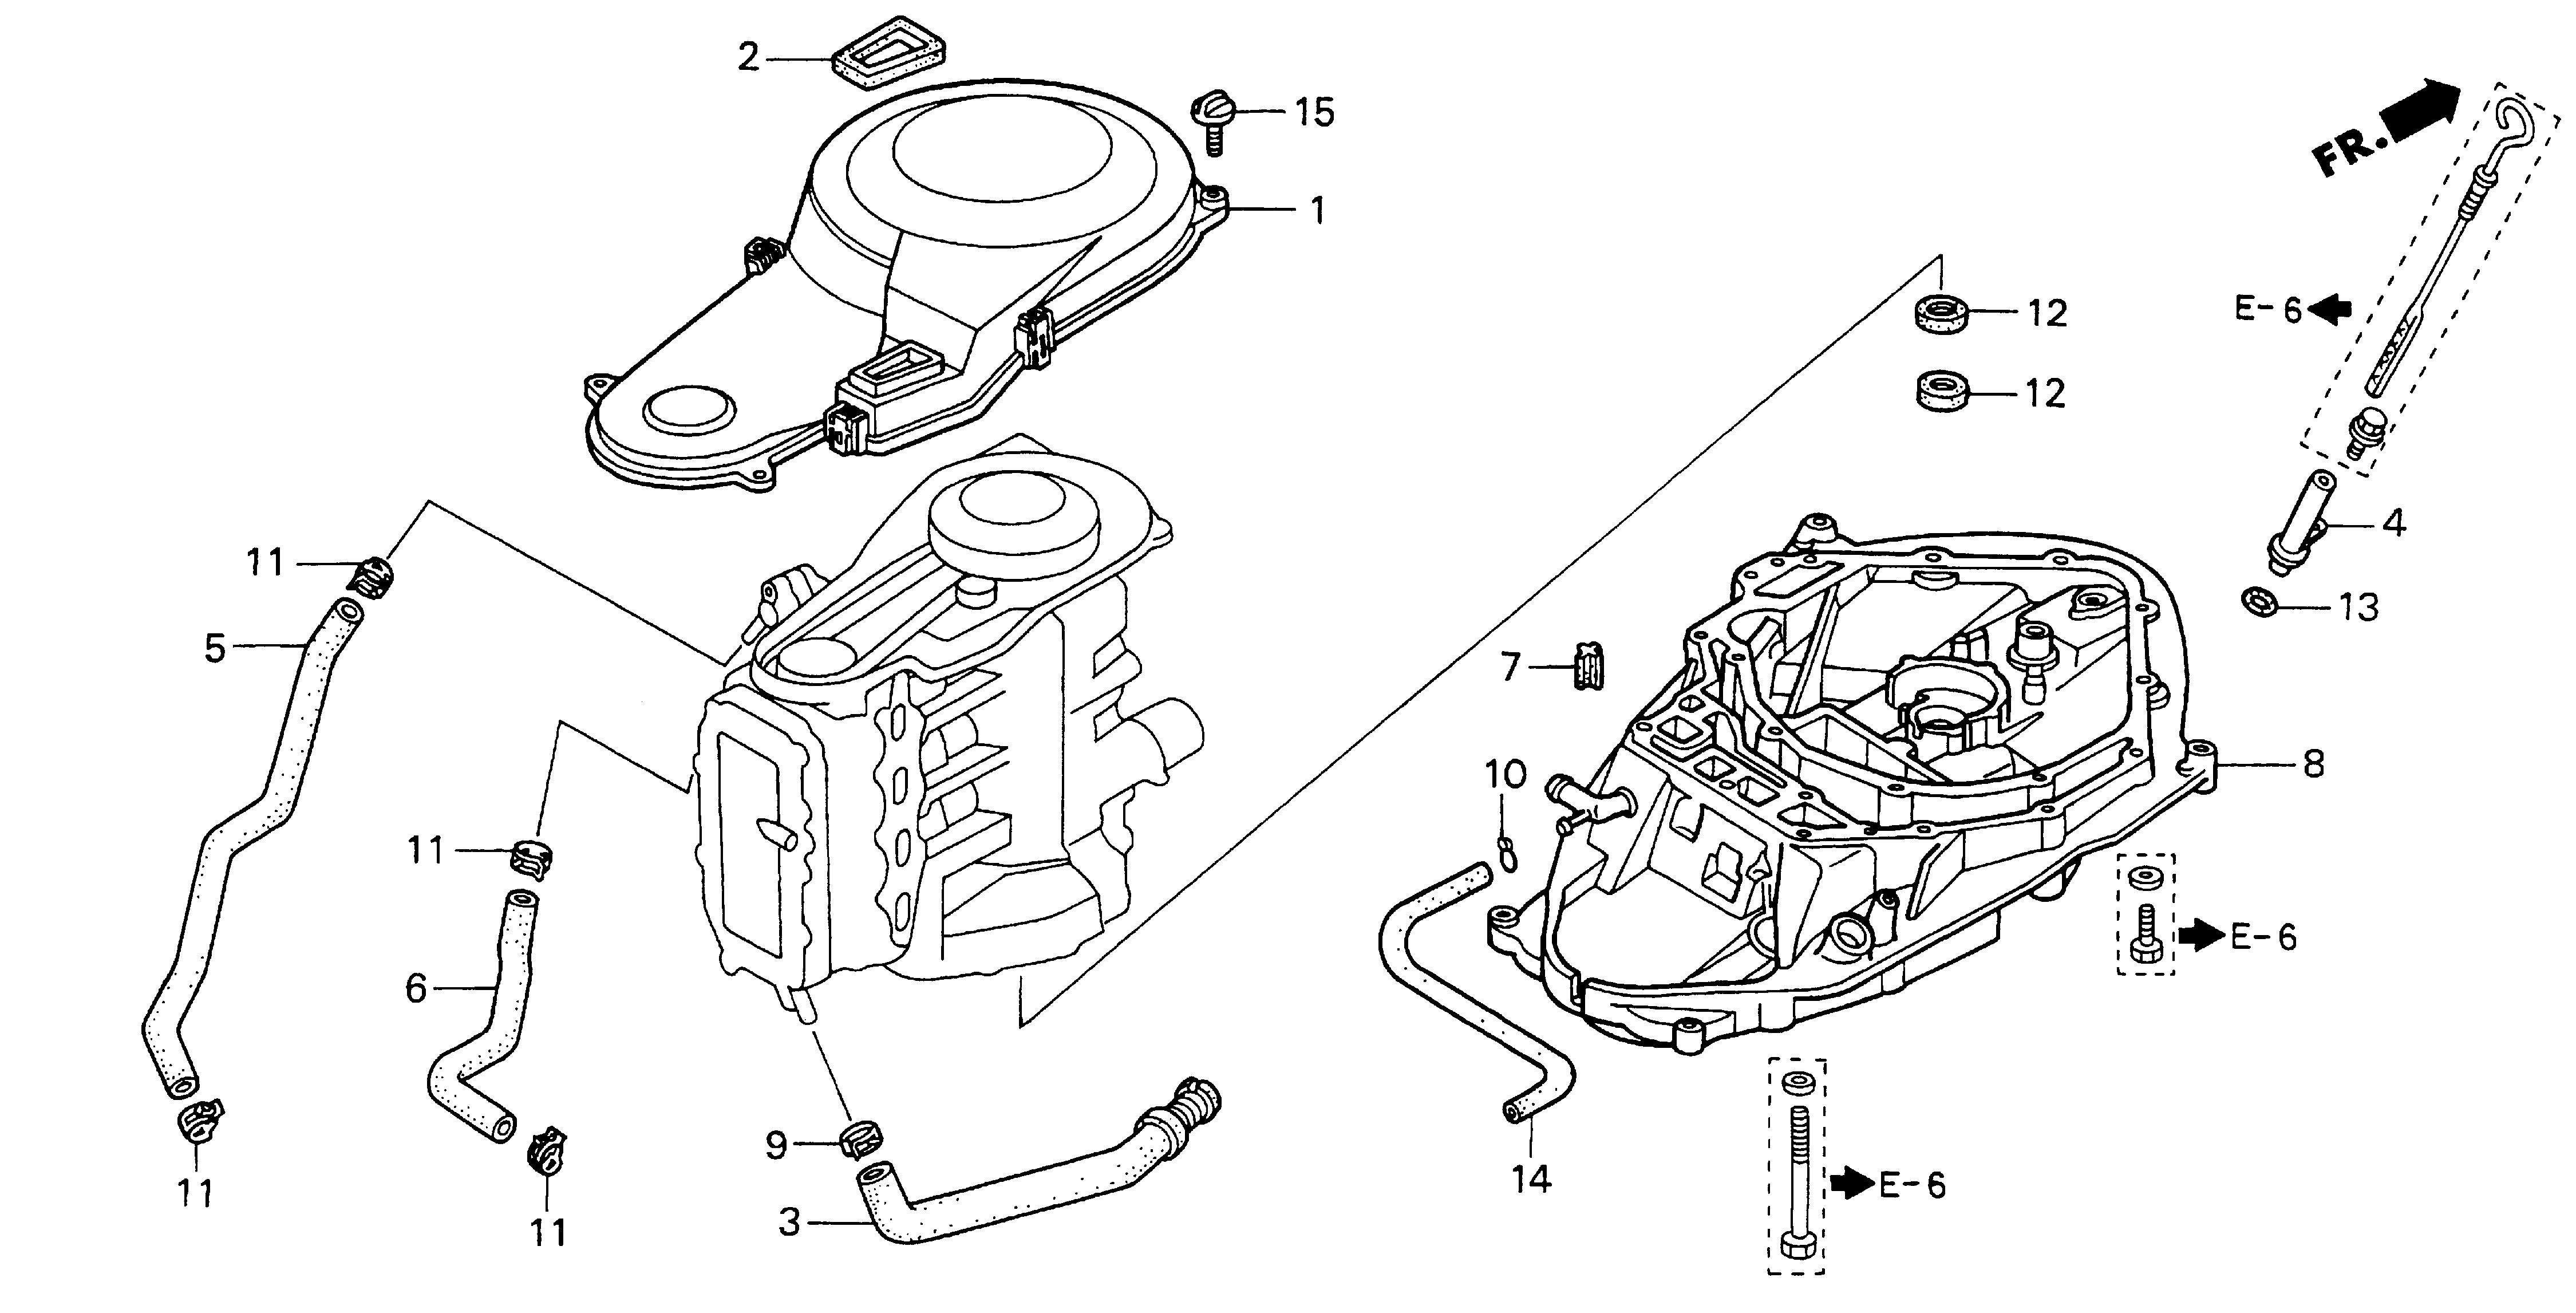 Honda Marine Parts Look Up Official Site Timing Belt Cover Schematic Mount Case